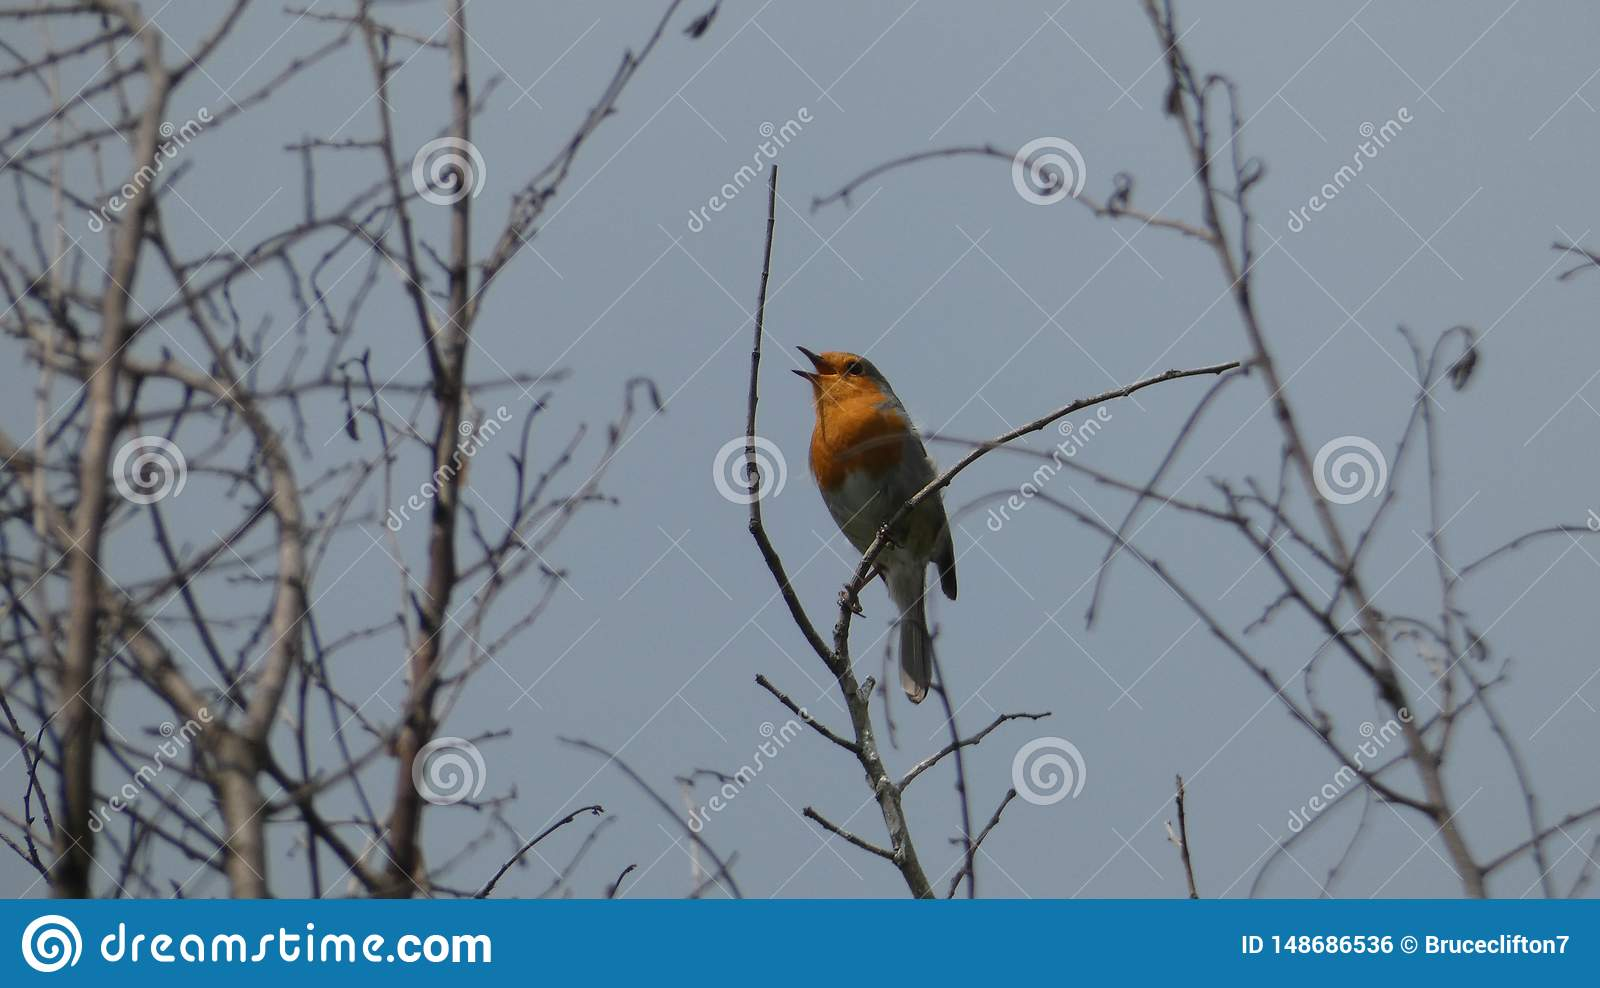 Robin Redbreast singing to its hearts delight in the evening sunset